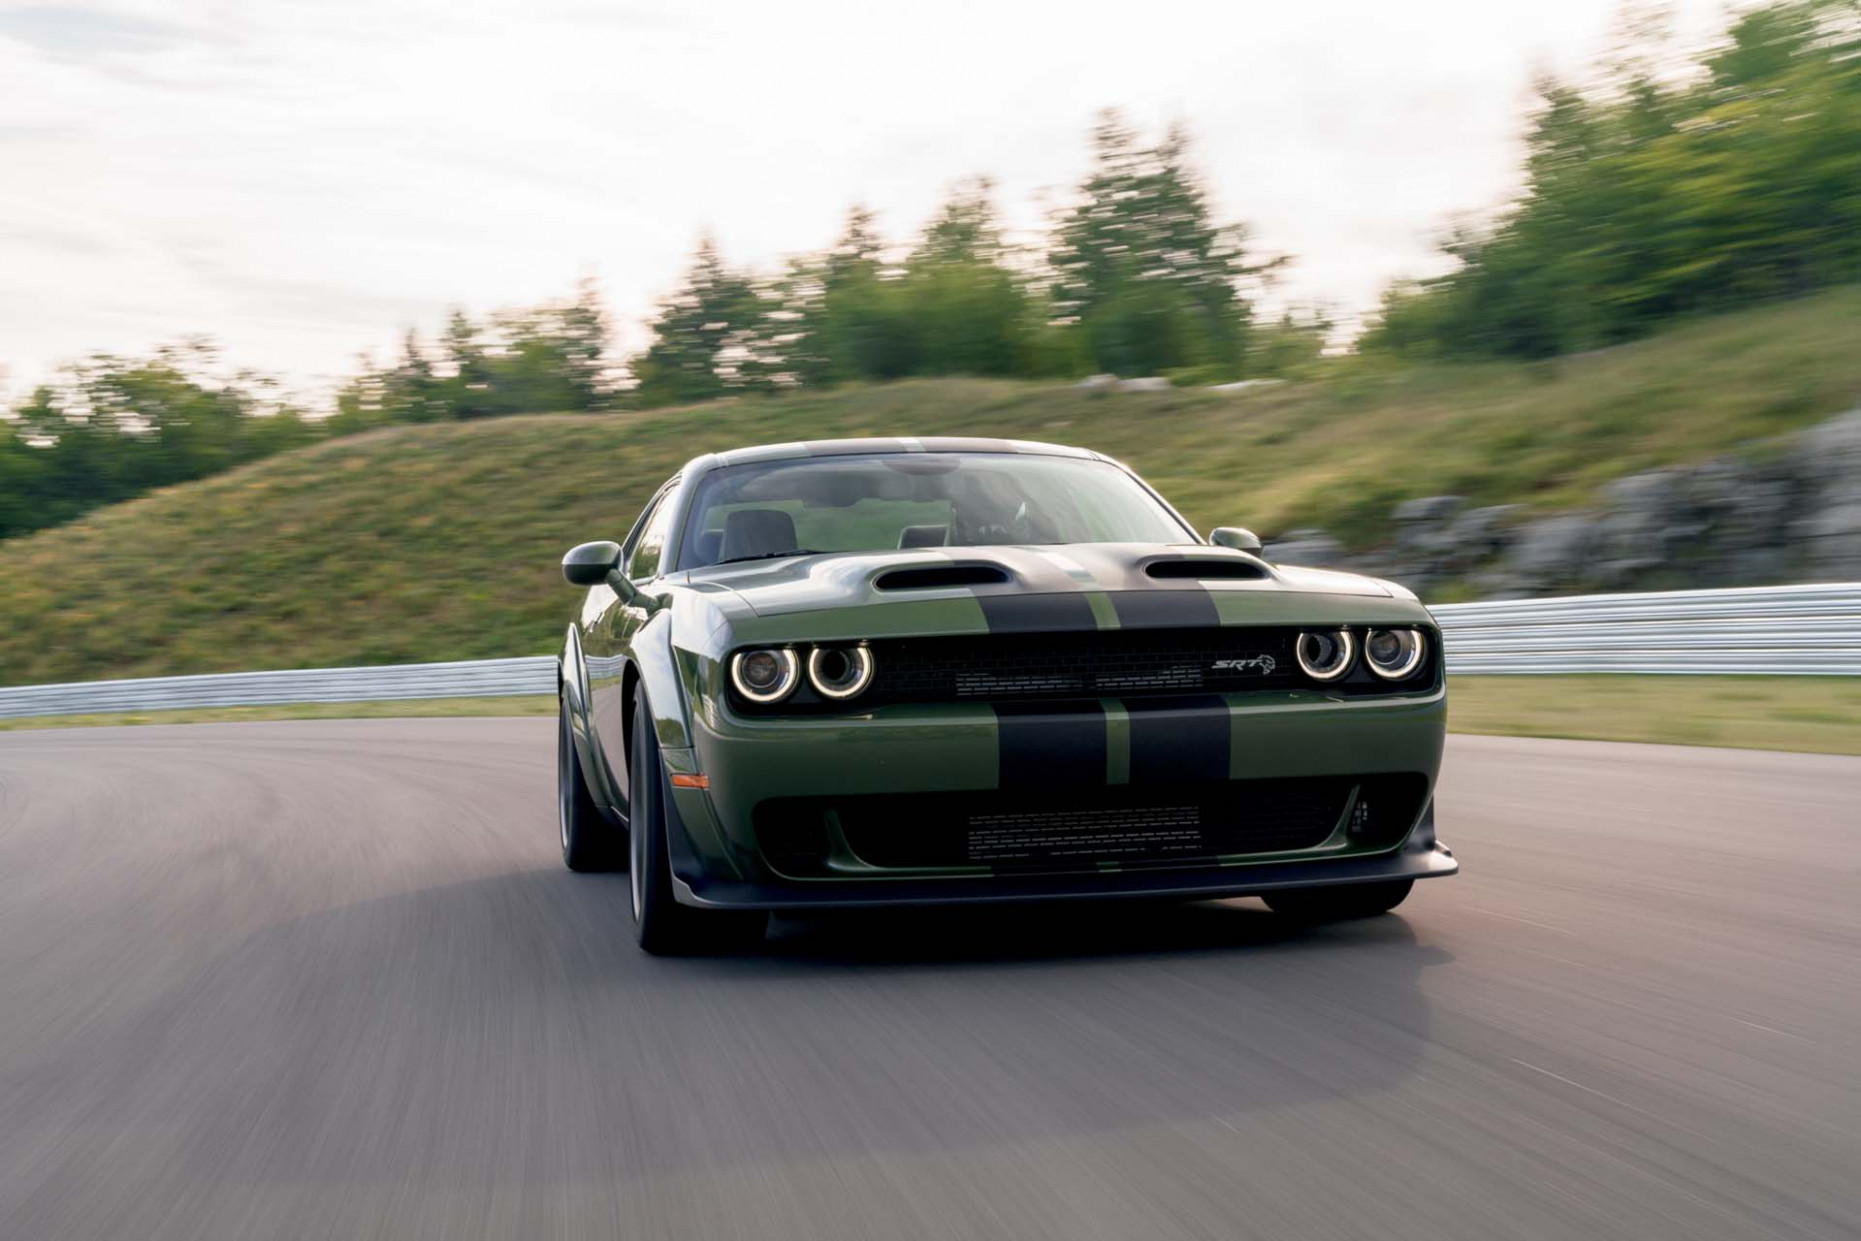 8 Dodge Challenger preview - dodge hellcat redeye 2020